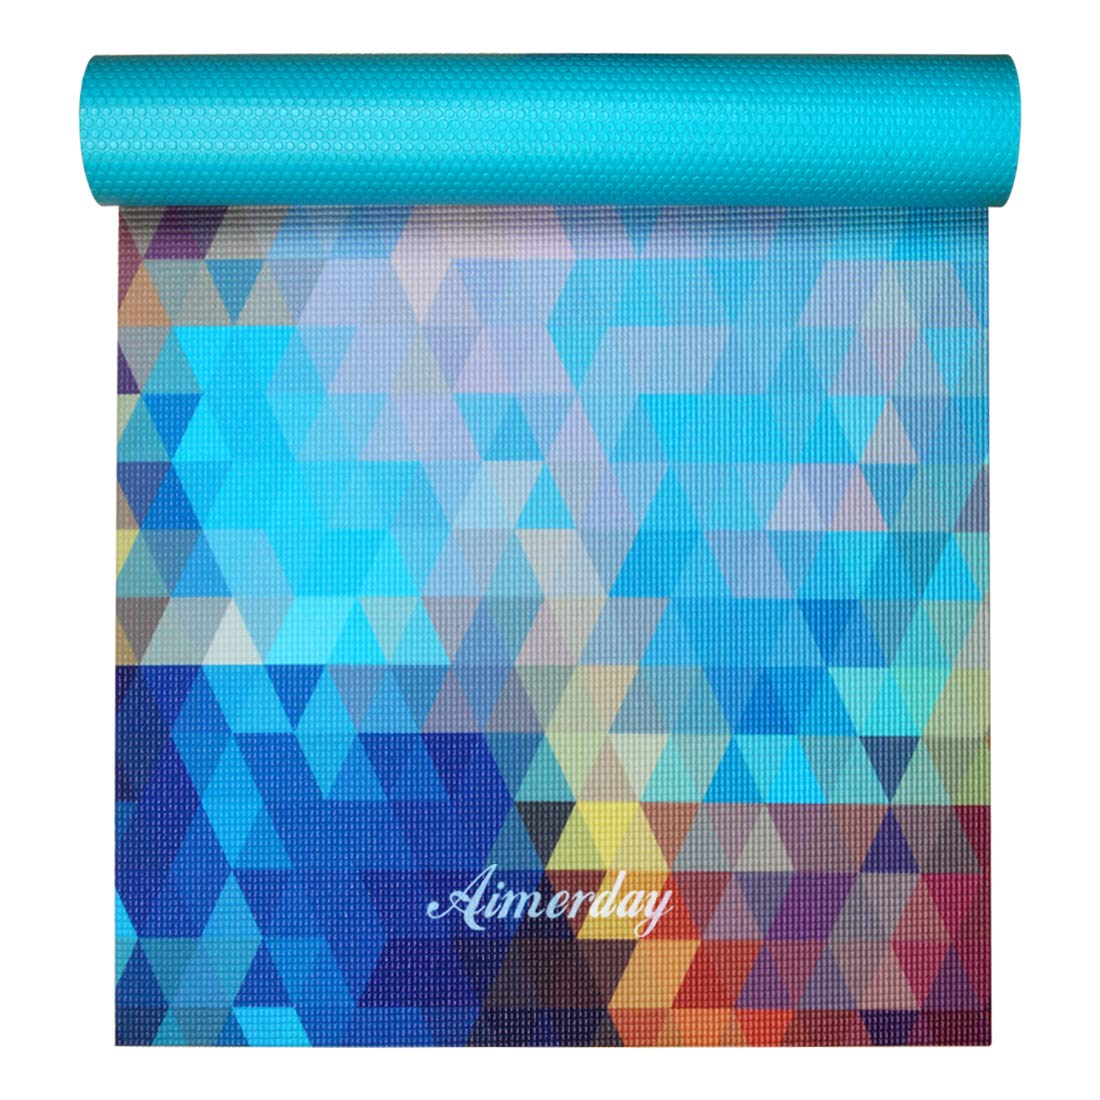 AIMERDAY Yoga Mat Premium Print Non Slip Eco Friendly Pilates Mat 72 inch 1/4 inch Thick Fitness Exercise Mat, Home Gym Workout Mat with Carrying Strap & Bag for Hot Yoga Class, Floor Exercises 6mm